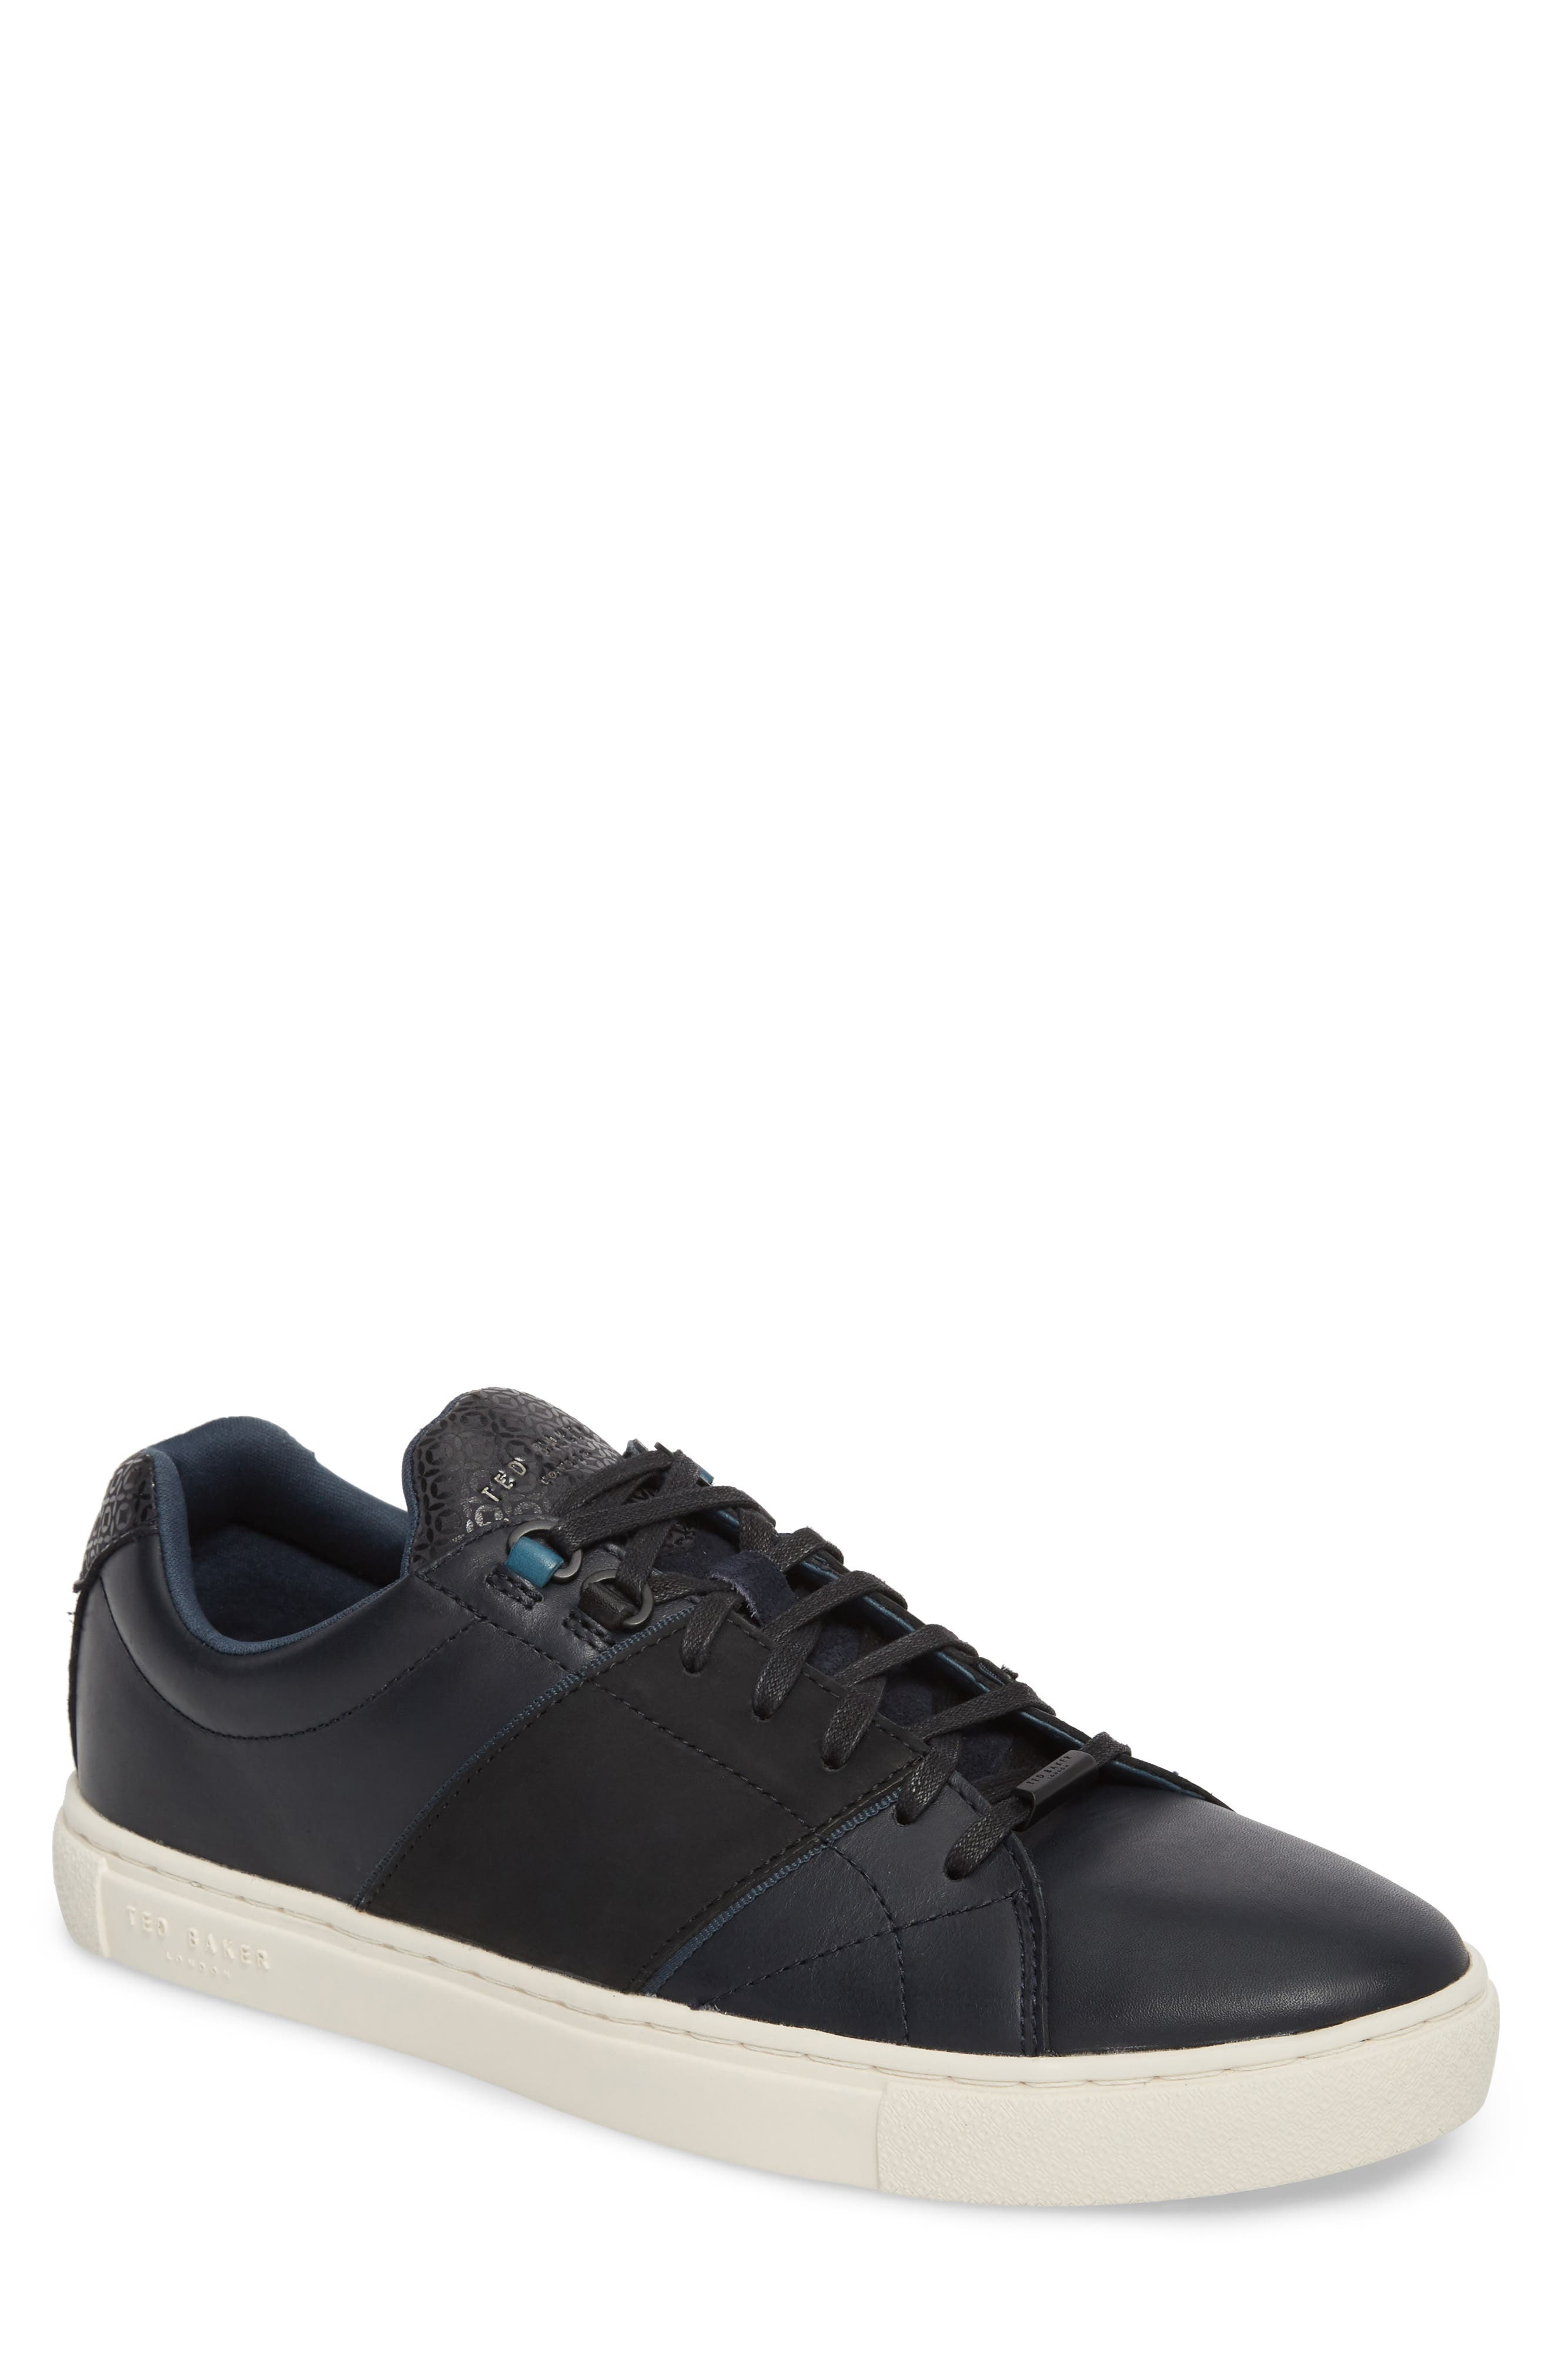 Ted Baker Quana Low Top Sneaker,                             Main thumbnail 1, color,                             Dark Blue Leather